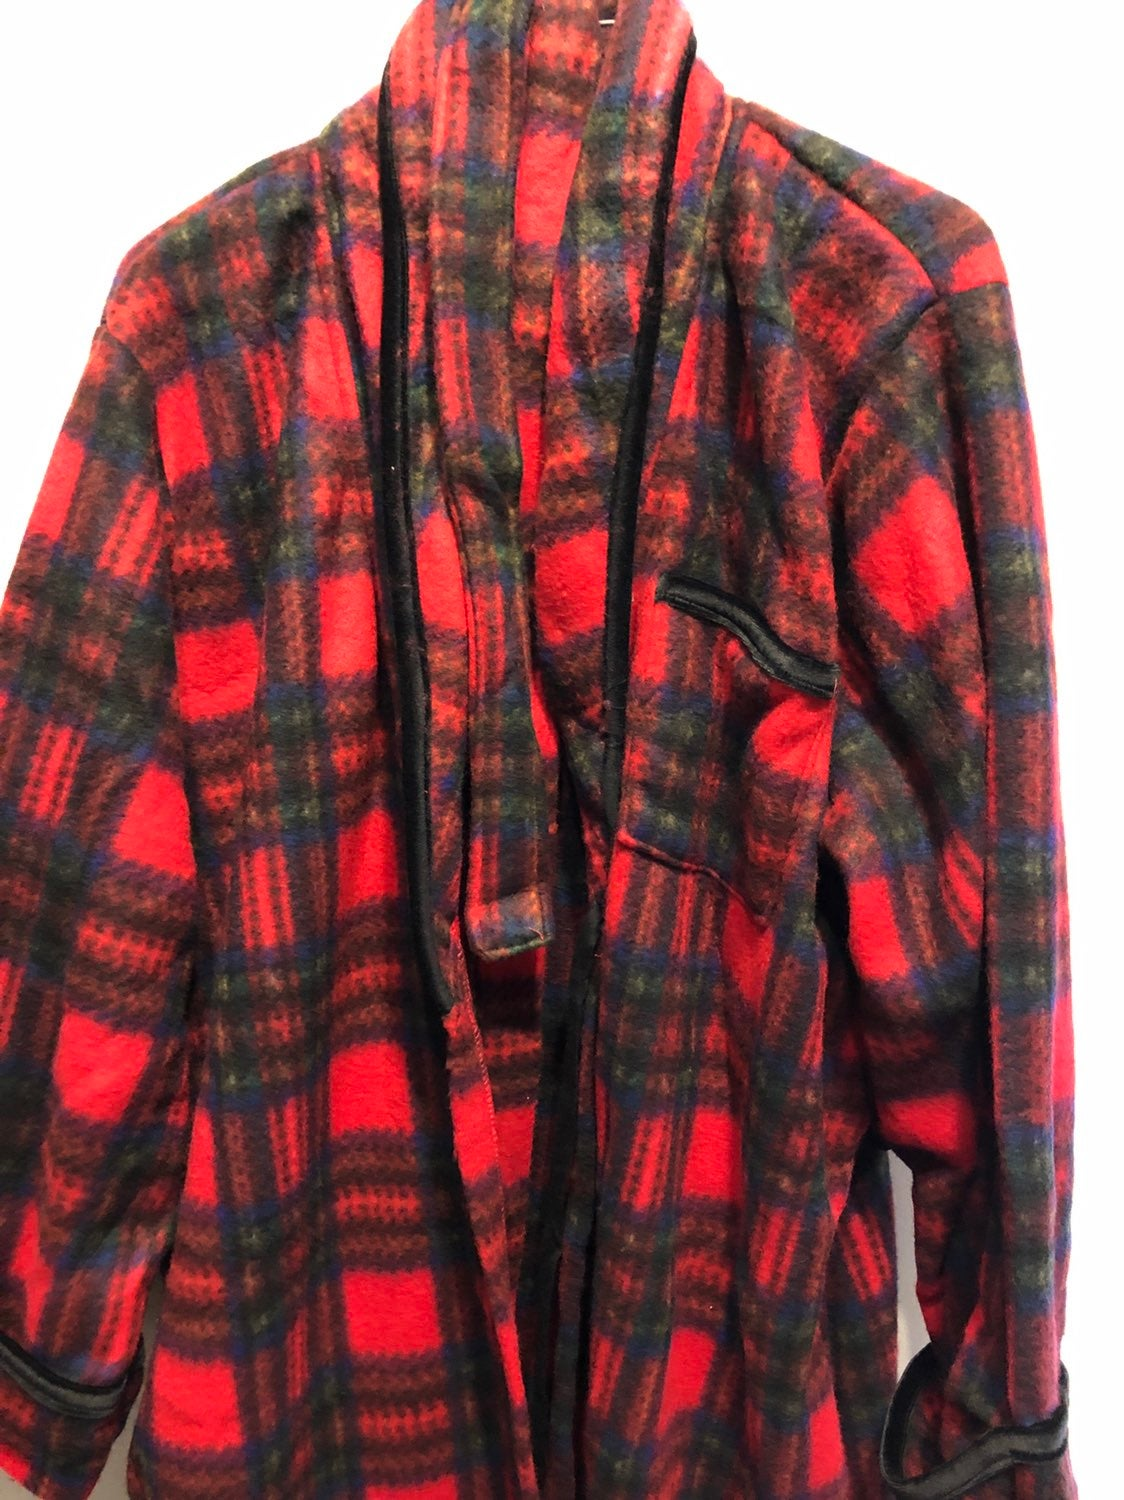 Secret Treasures Red Green Plaid Robe M